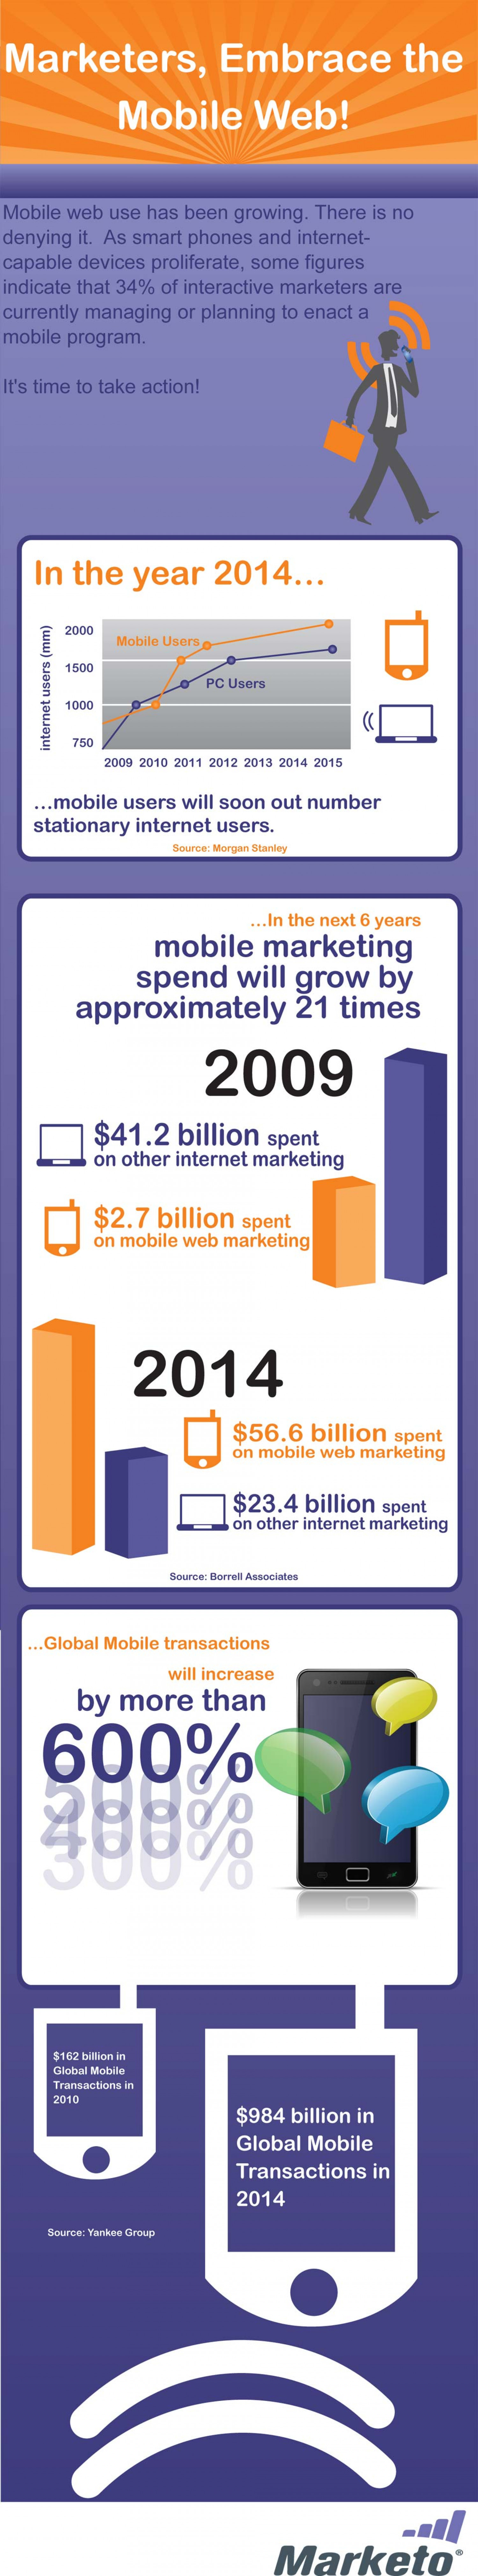 Marketers, Embrace the Mobile Web Infographic